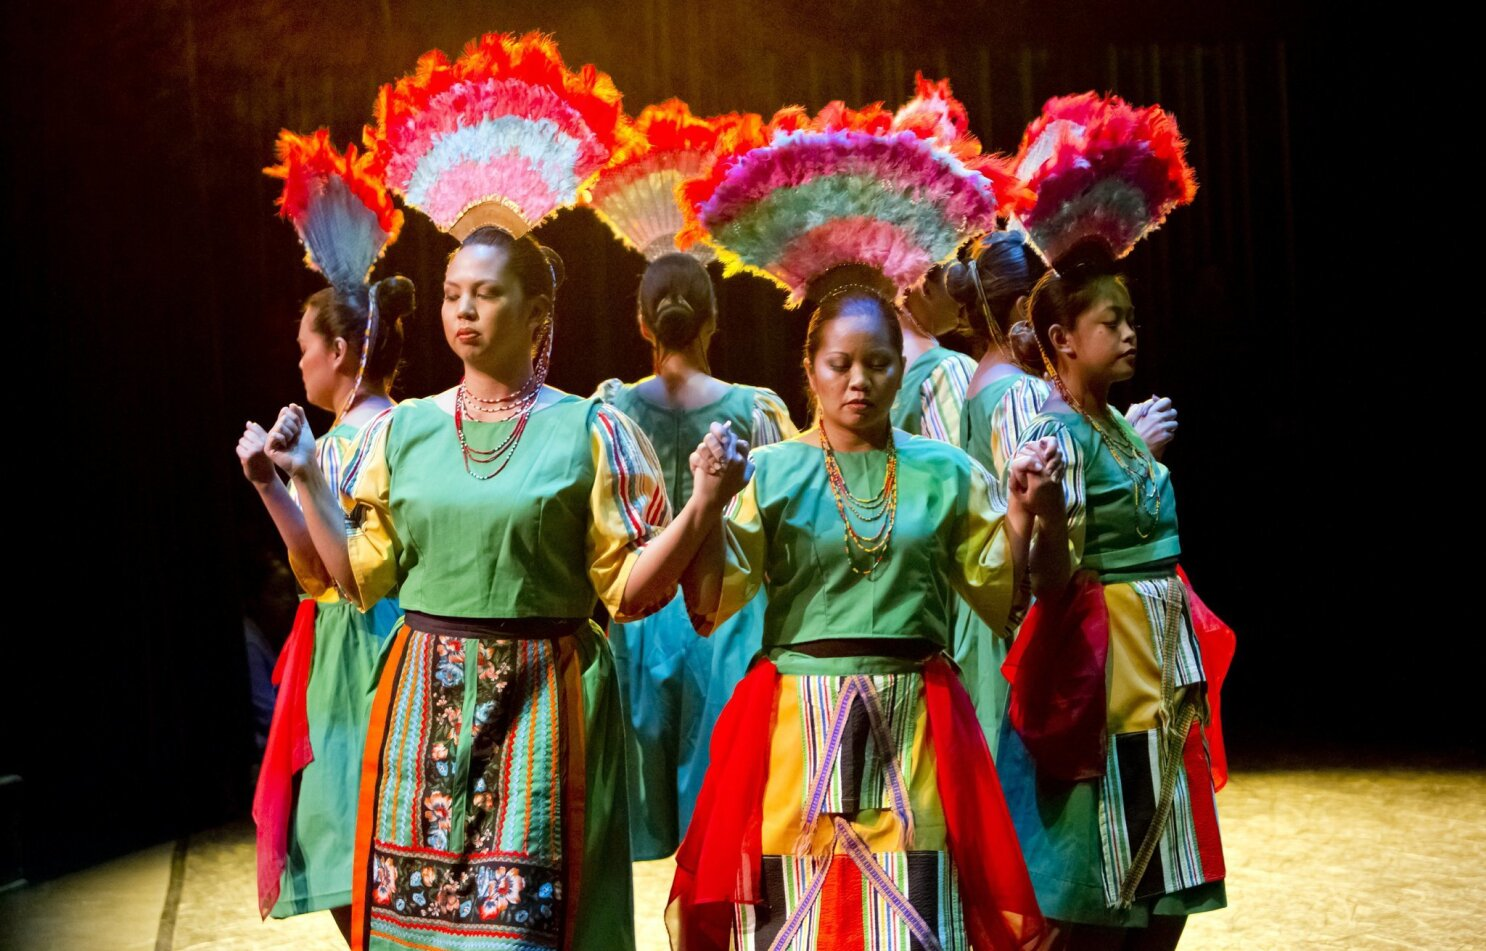 Filipino tradition, culture, custom told through dance and music